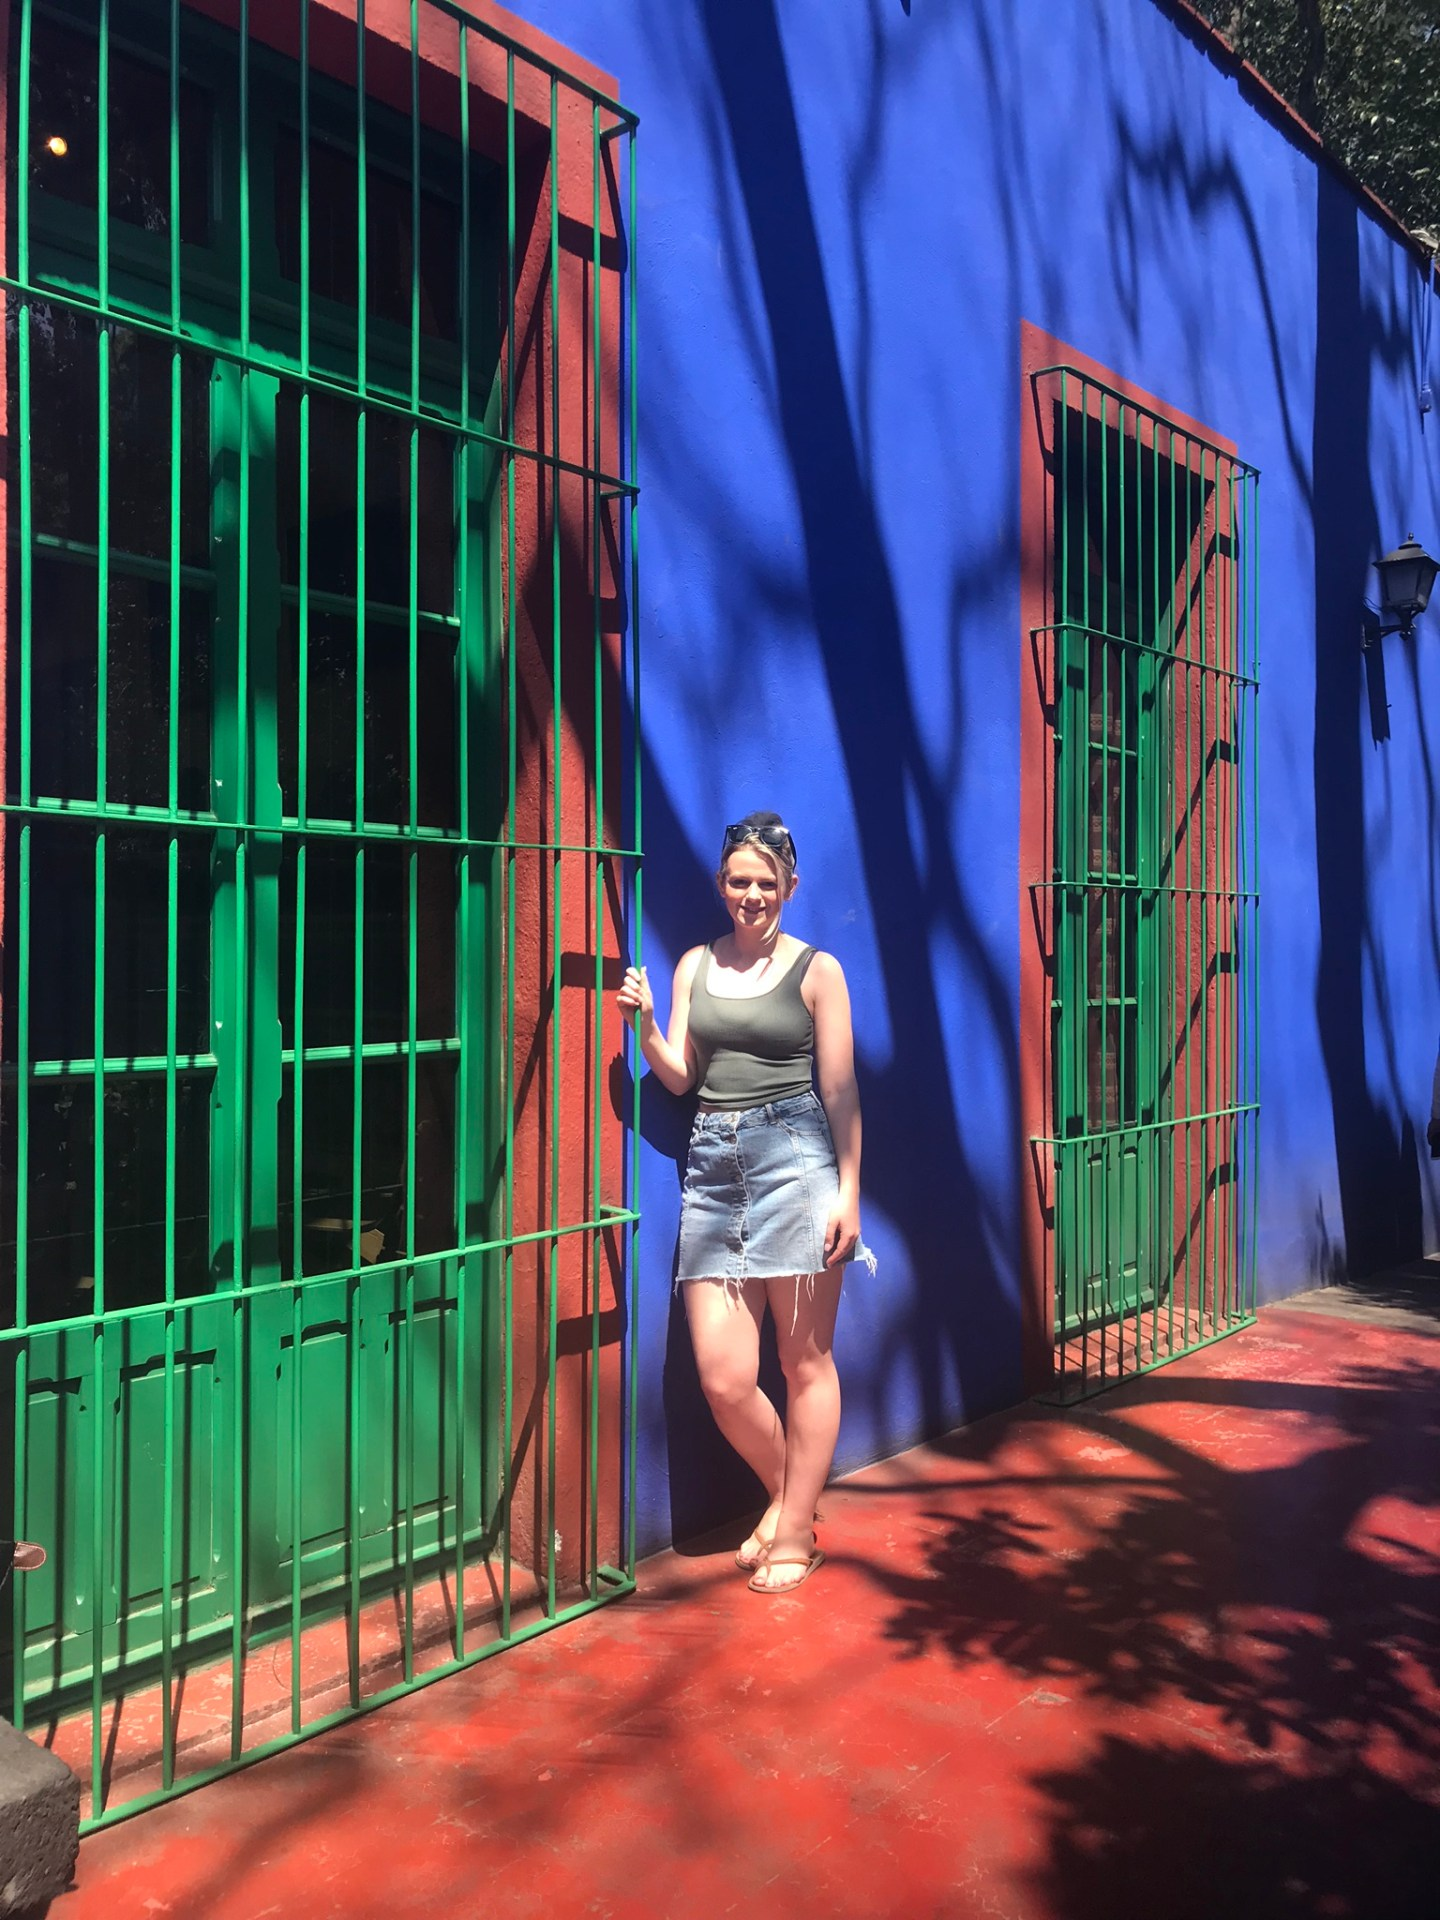 Laura at the Frida Kahlo Museum, Mexico City